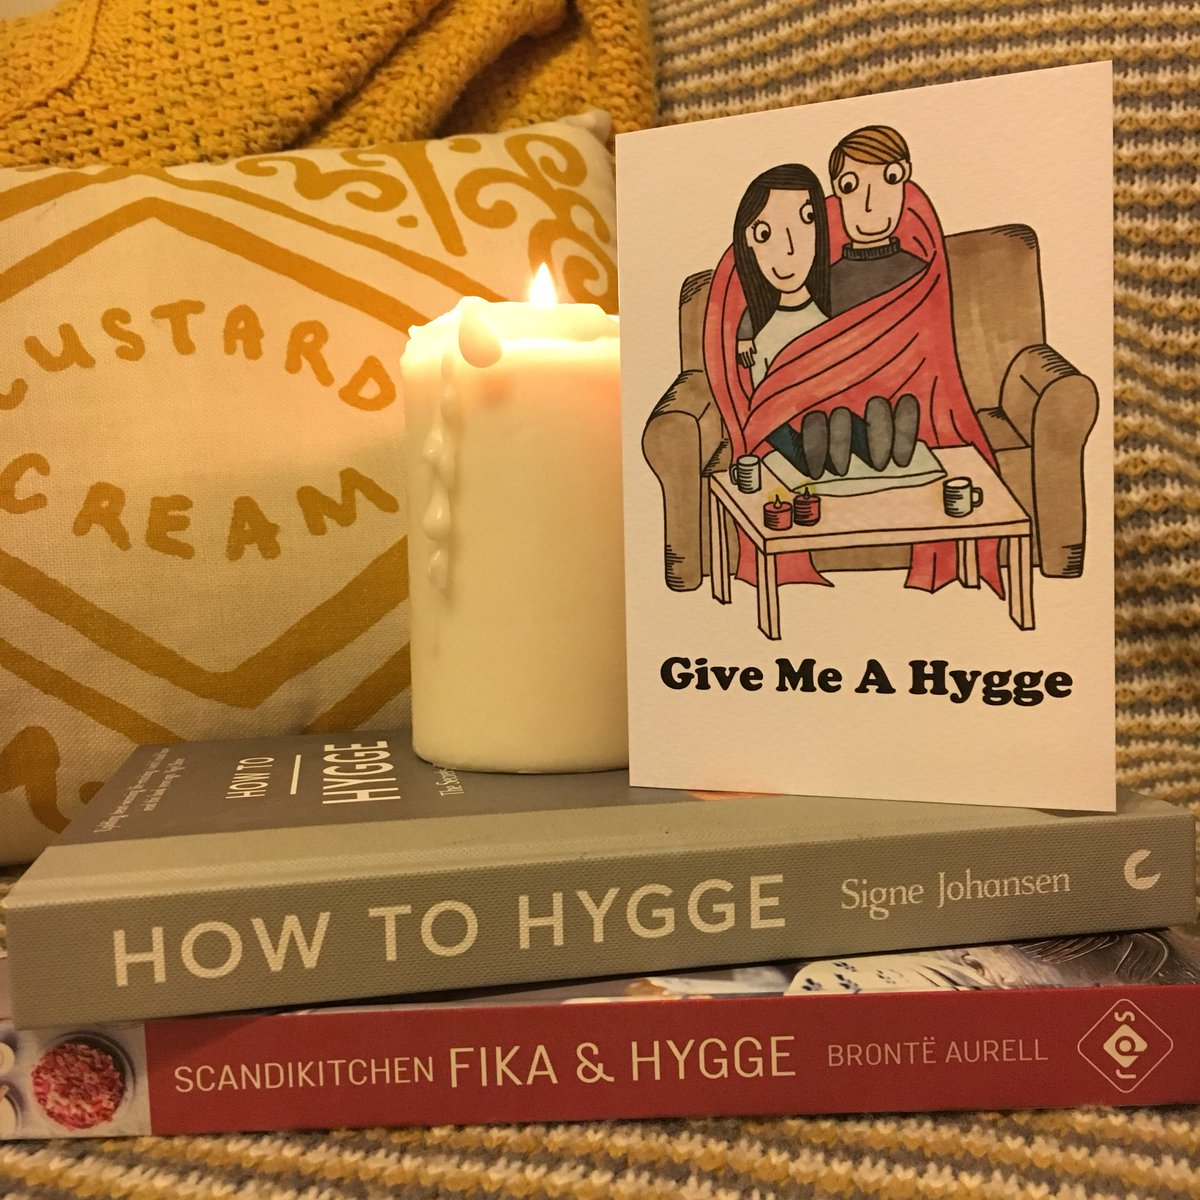 Helena handcart handcartdesigns twitter if your dearest arent nearest then why not send them a little hygge with our give me a hygge card available in our etsy shop kristyandbryce Image collections